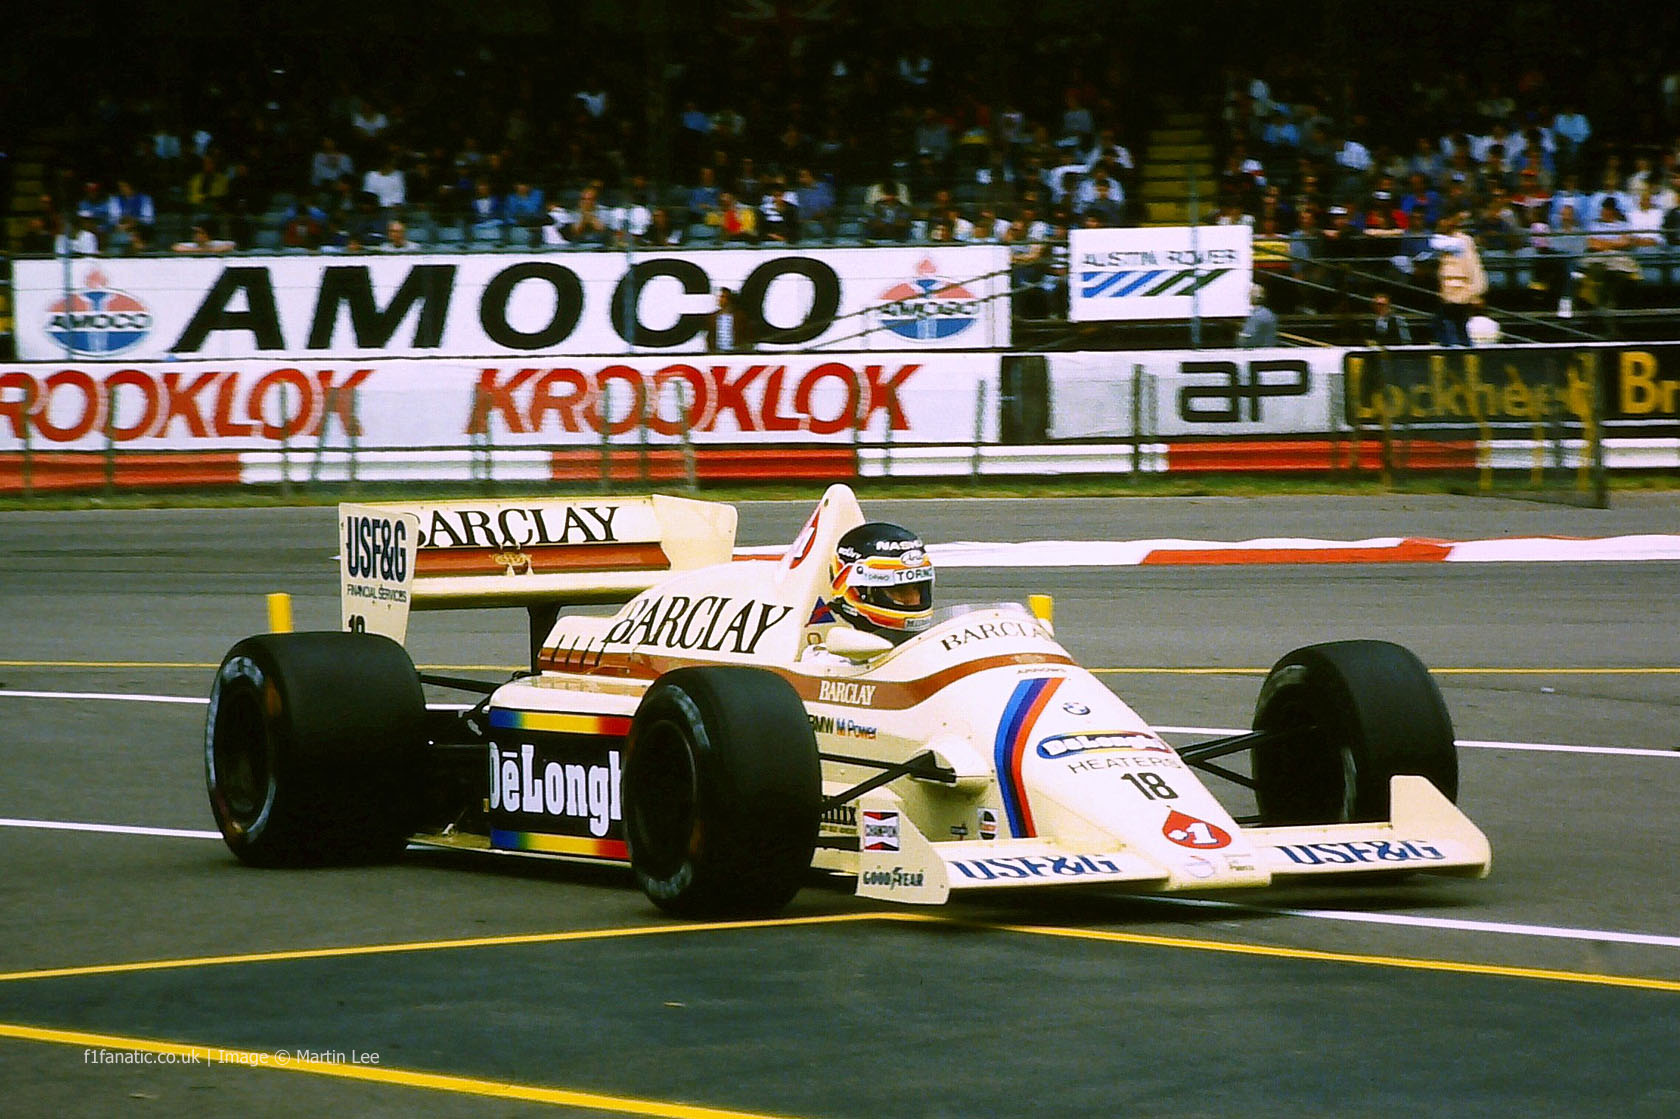 Thierry Boutsen Arrows Silverstone 1985 183 F1 Fanatic